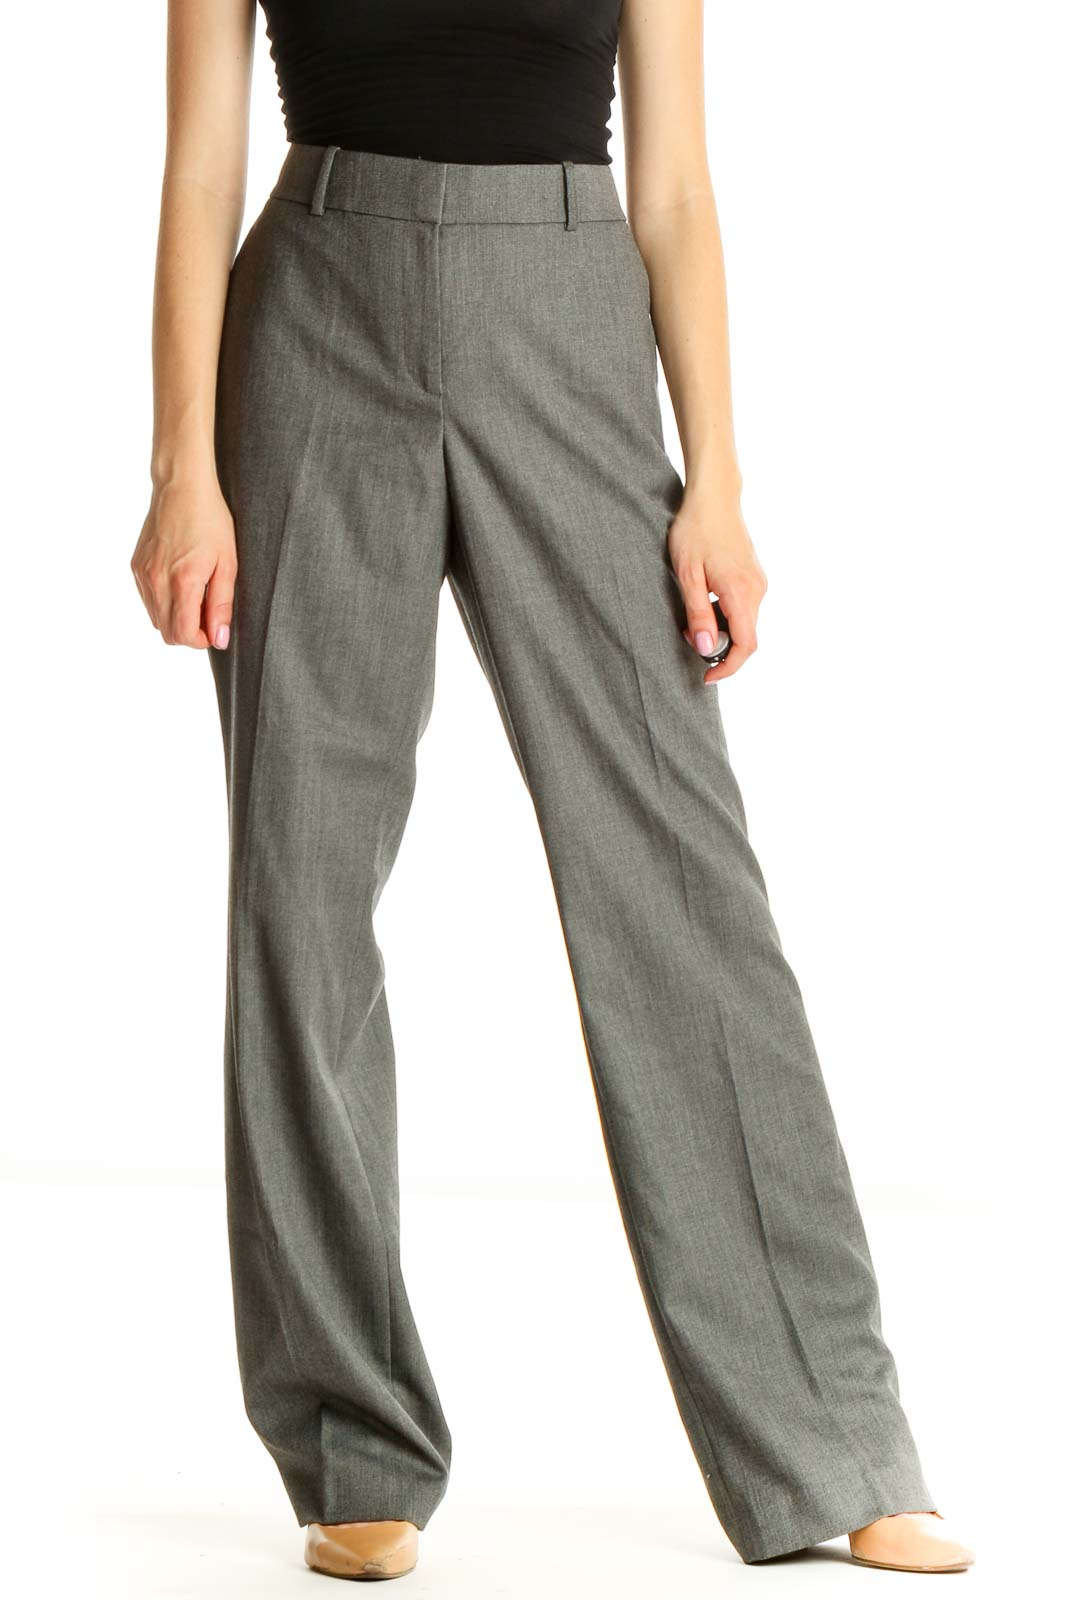 Gray Solid All Day Wear Trousers Front